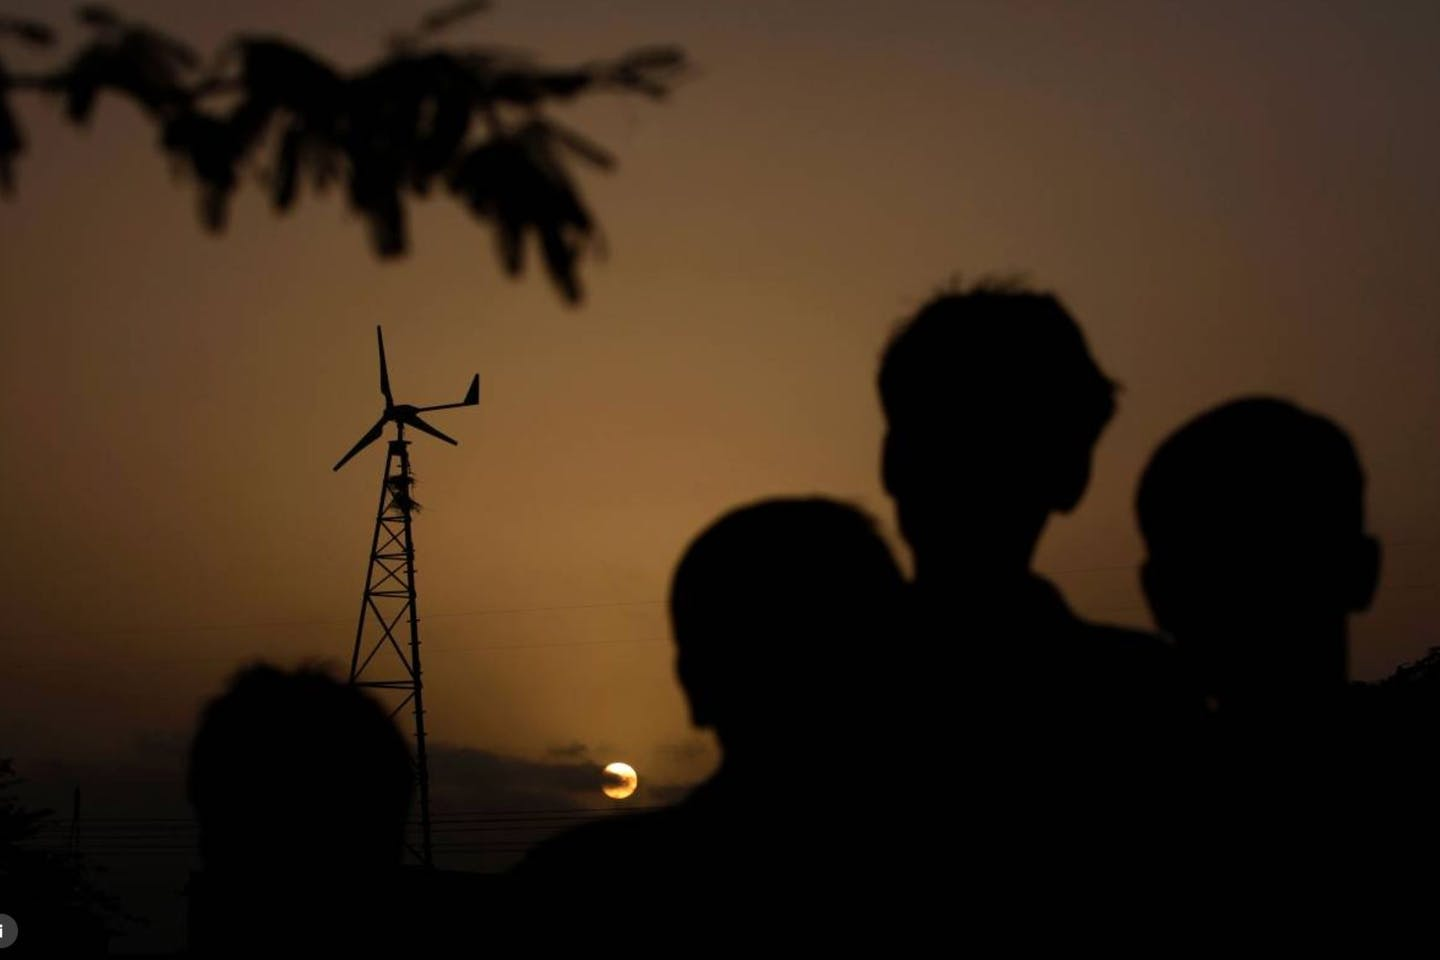 Pakistan renewables or coal rising?